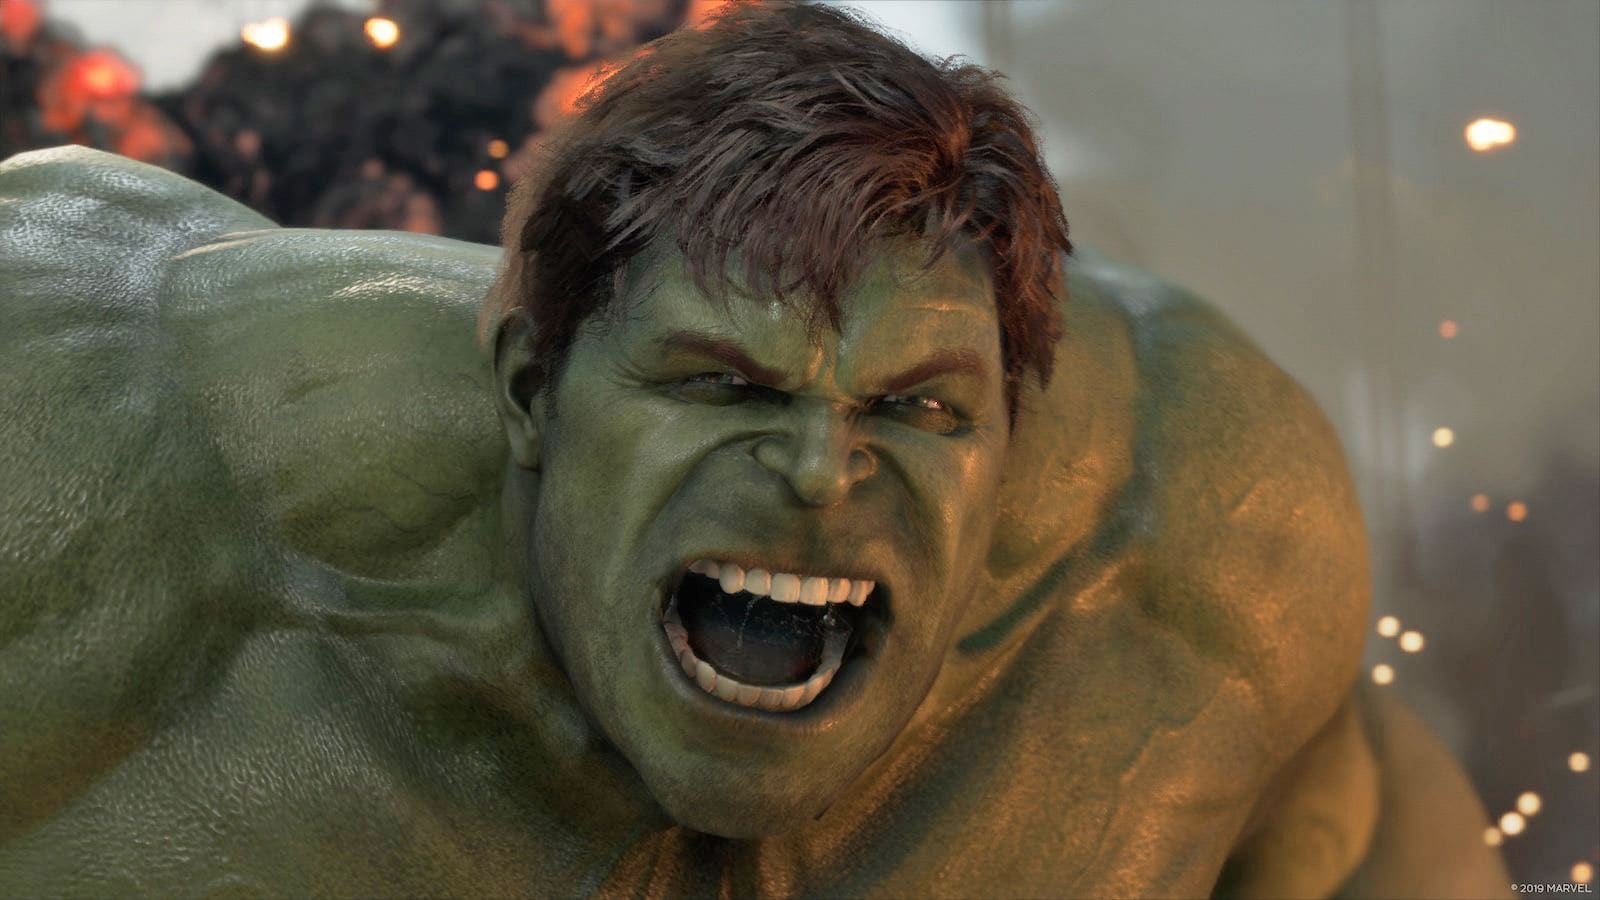 Playing Marvel's Avengers, a living RPG with microtransactions